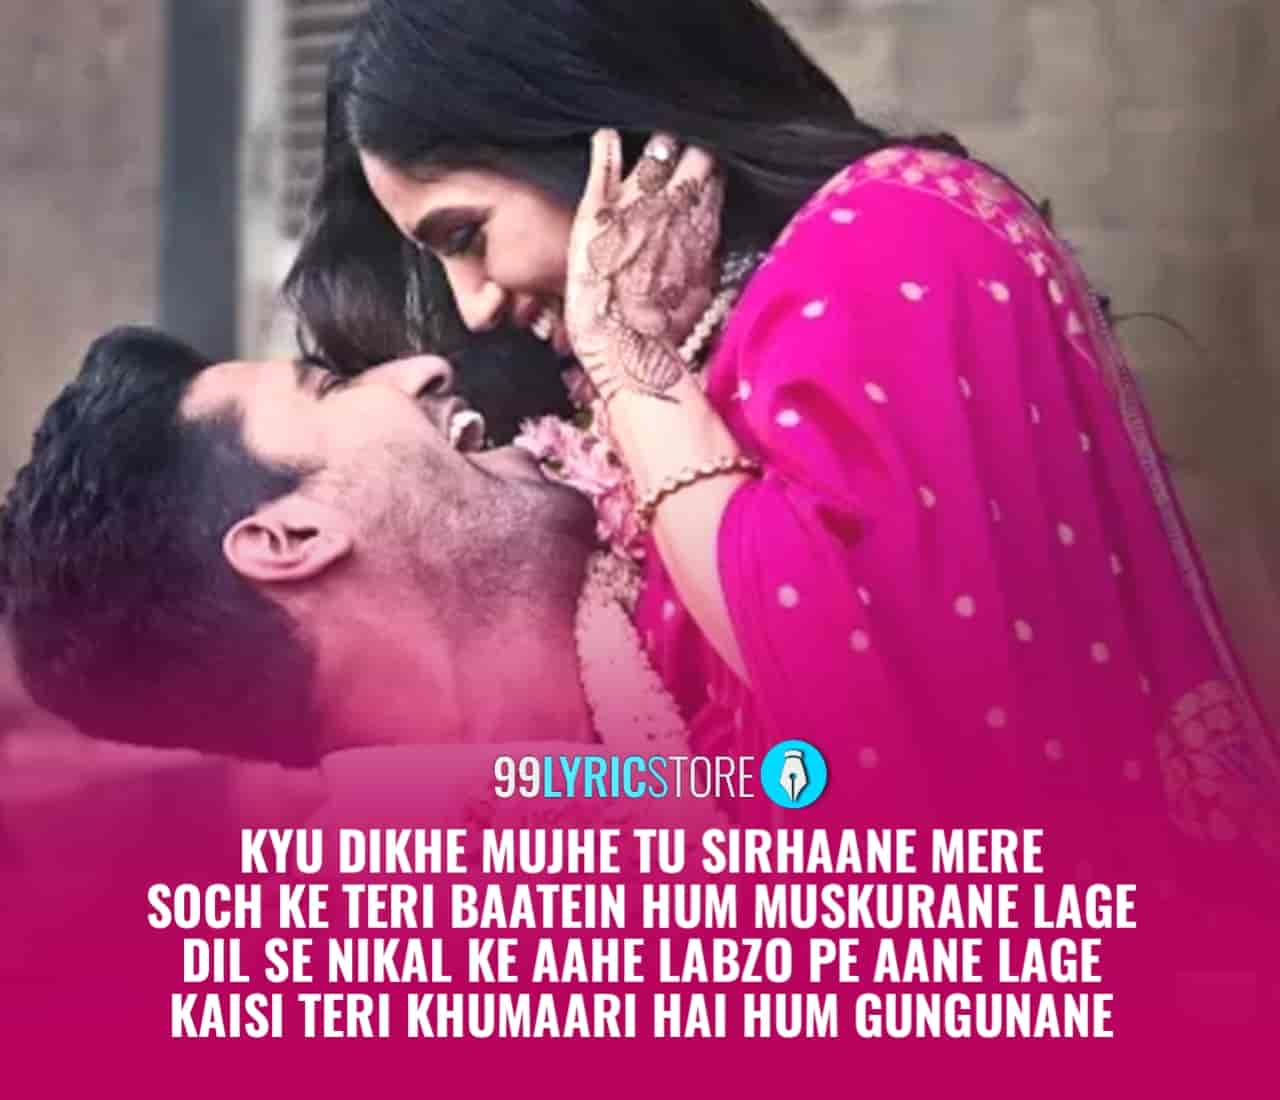 Channa ve song lyrics image, Sung by Akhil Sachdeva